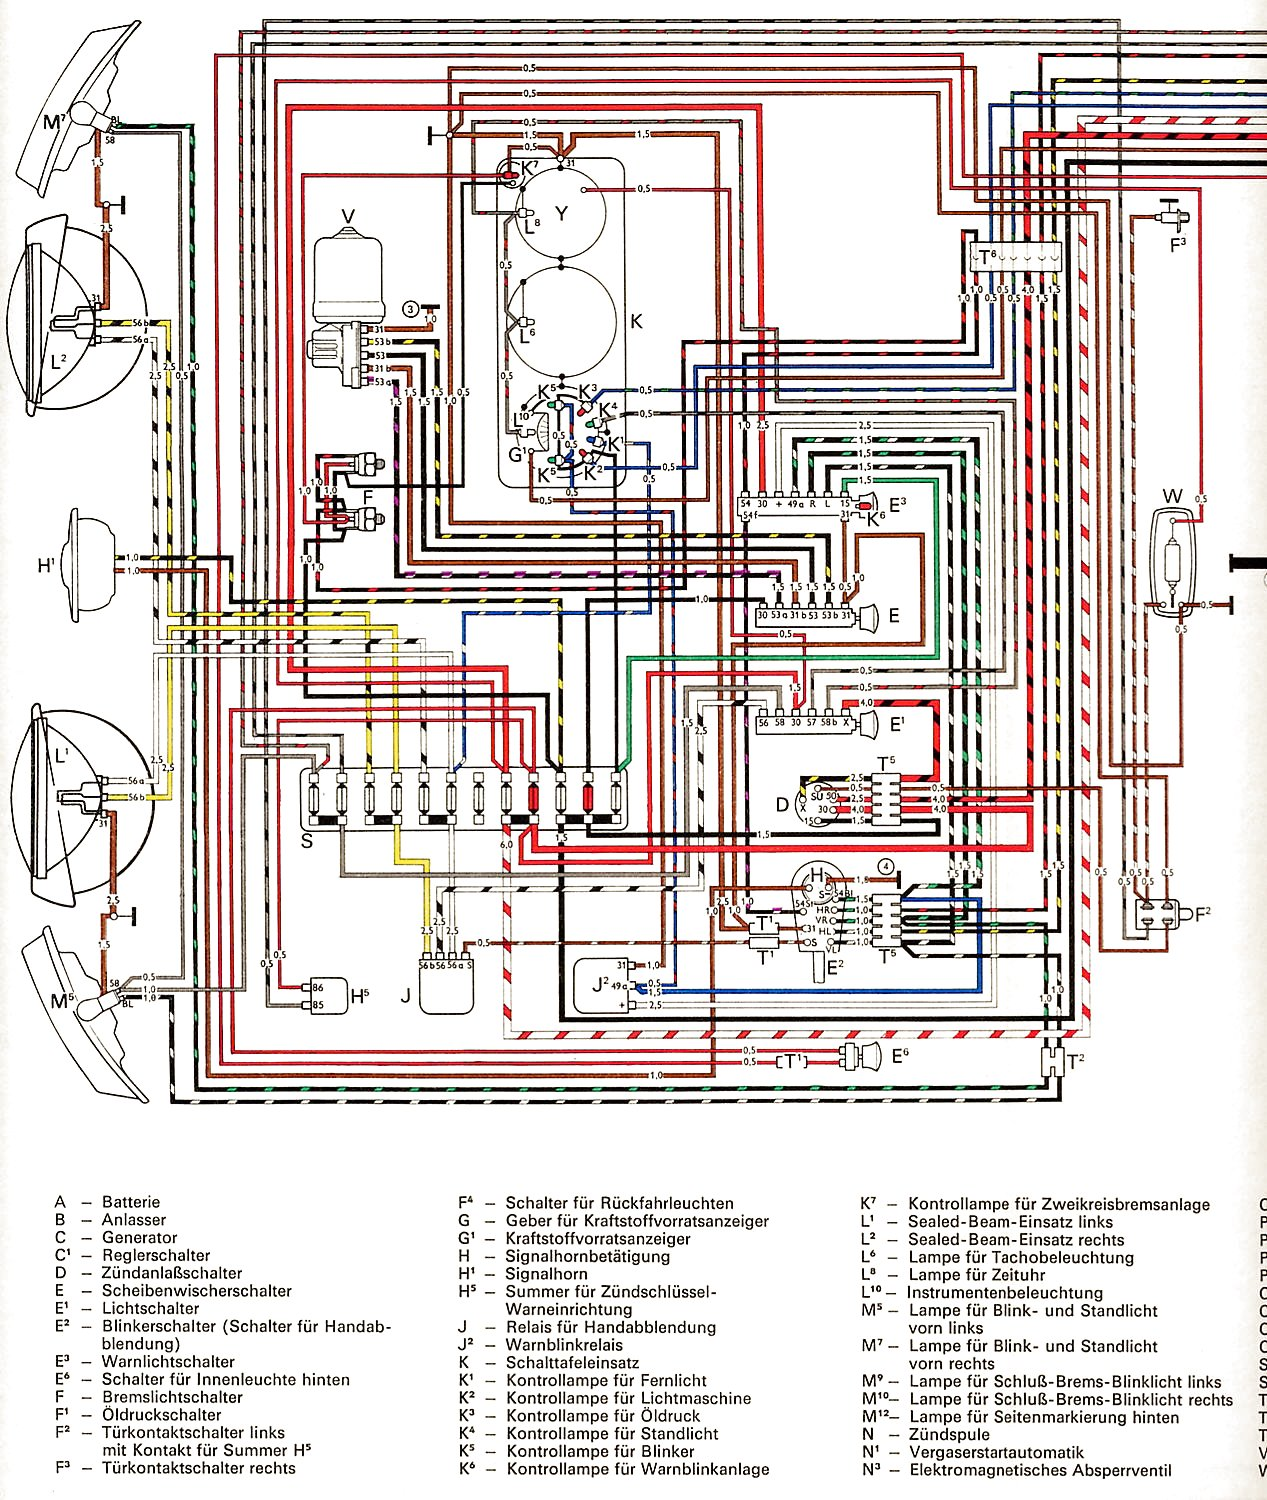 Transporter_USA_from_August_1970 1 77 beetle wiring diagram 1974 vw super beetle wiring diagram 1964 VW Beetle Wiring Diagram at creativeand.co